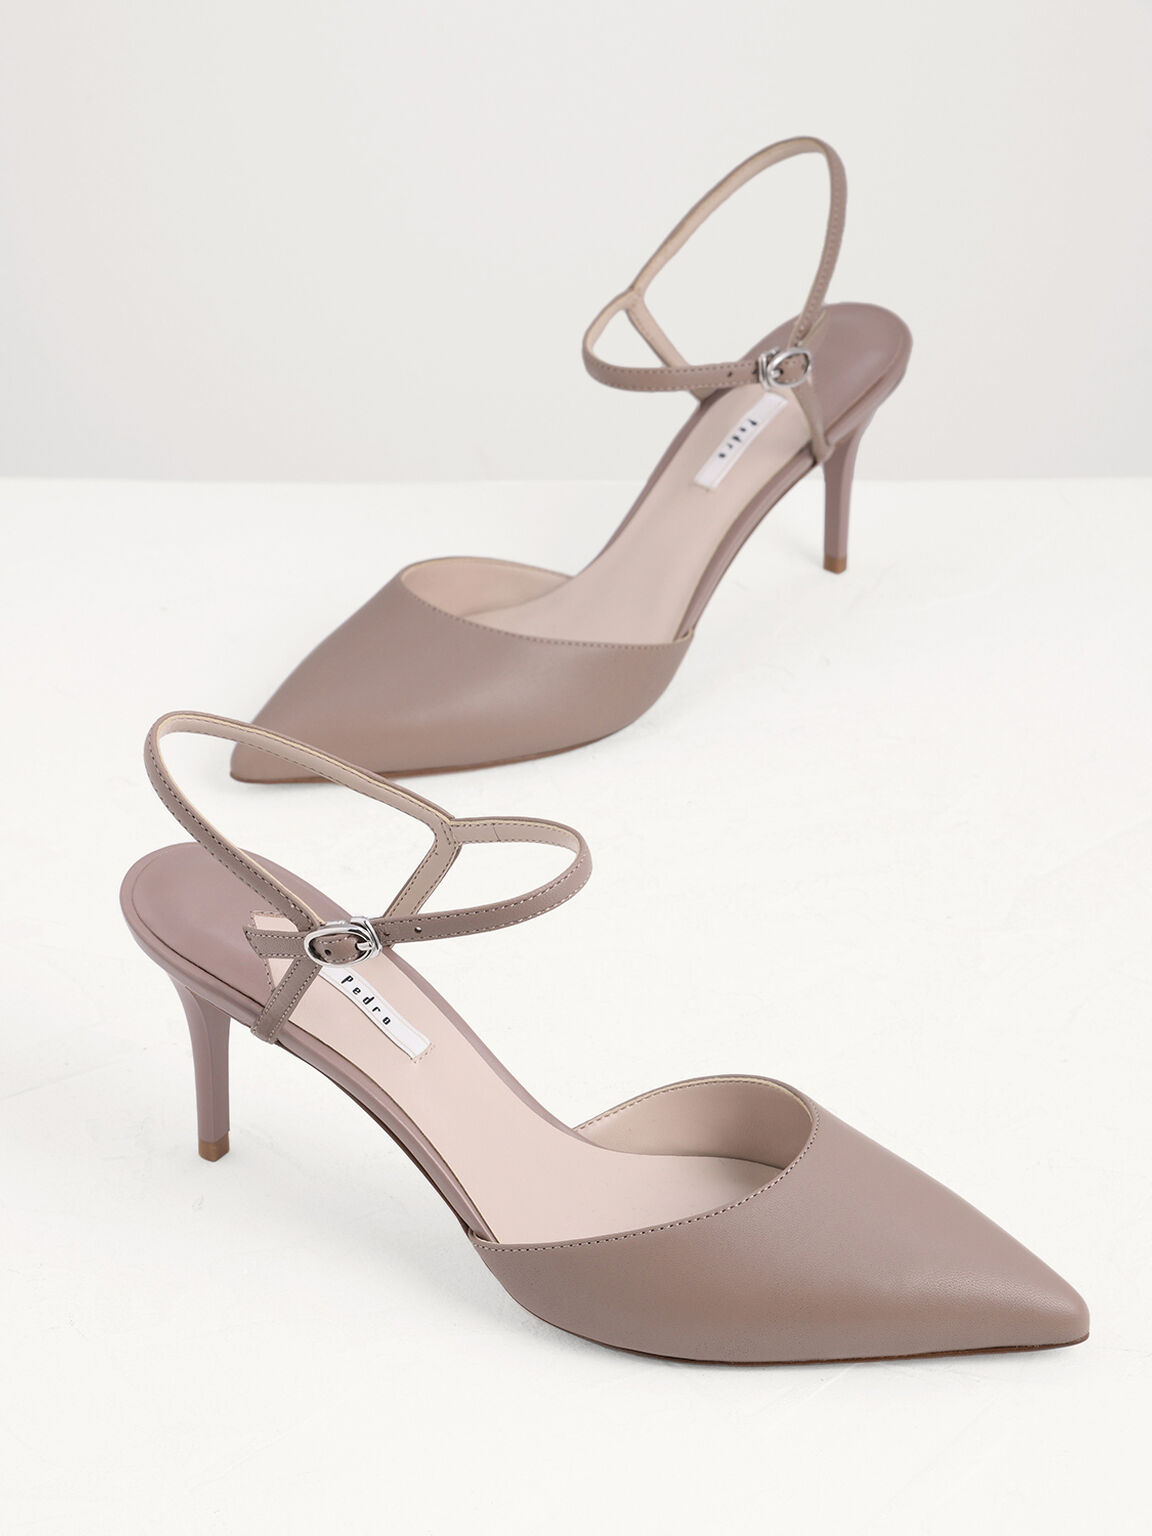 Ankle Strap Pointed Toe Leather Pumps, Taupe, hi-res